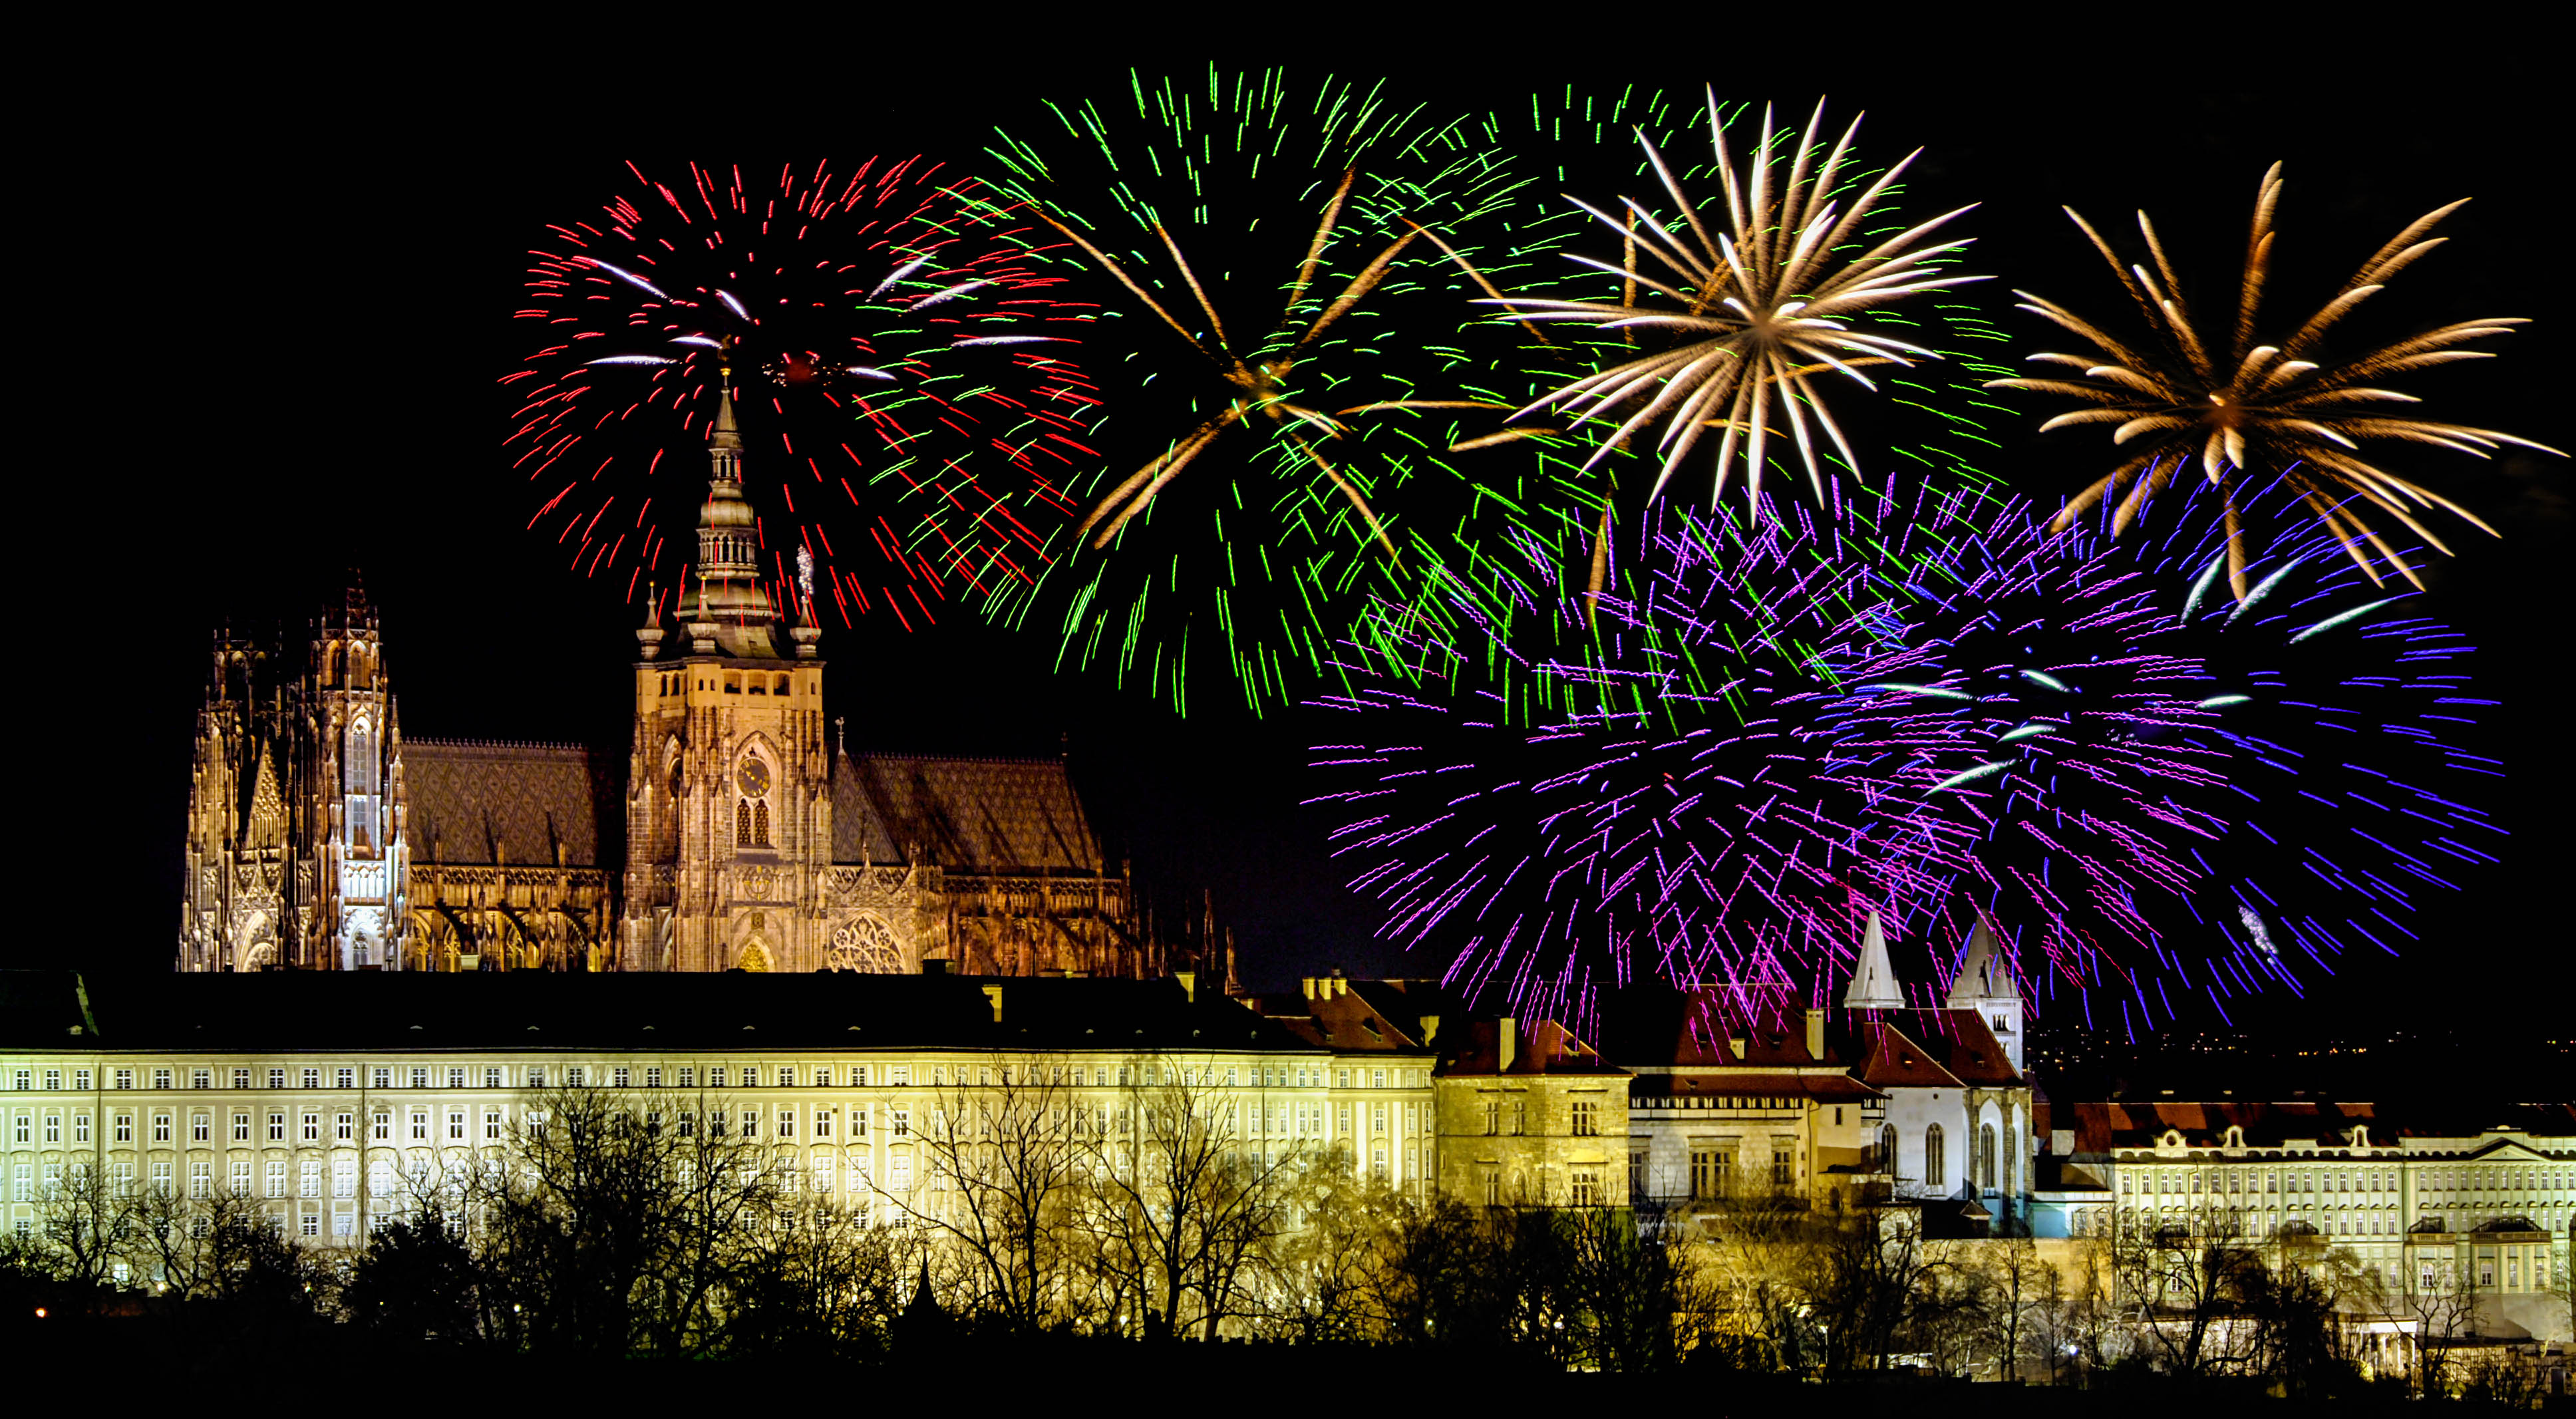 Prague castle in the night - residence of czech president and colorful fireworks during the New Year celebrations